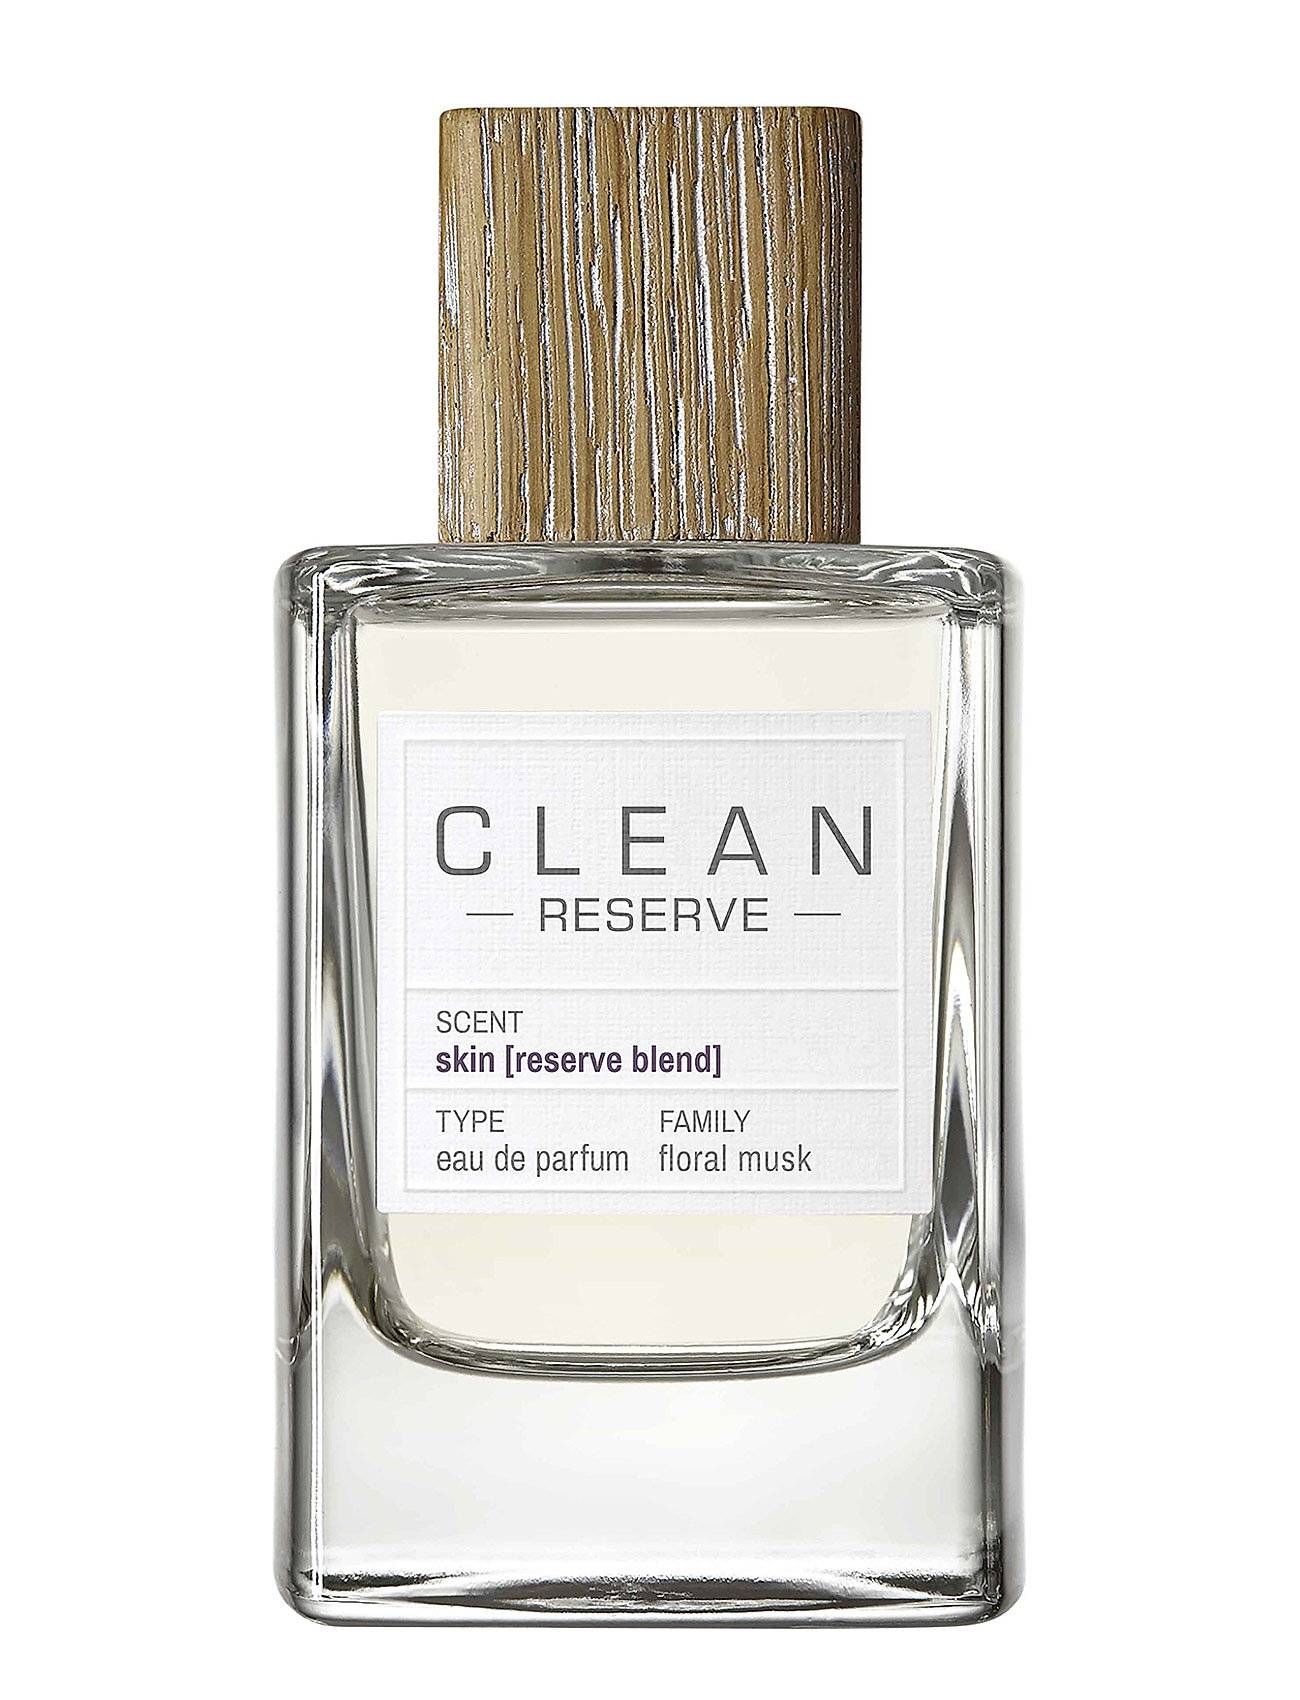 Clean Reserve Blends Skin